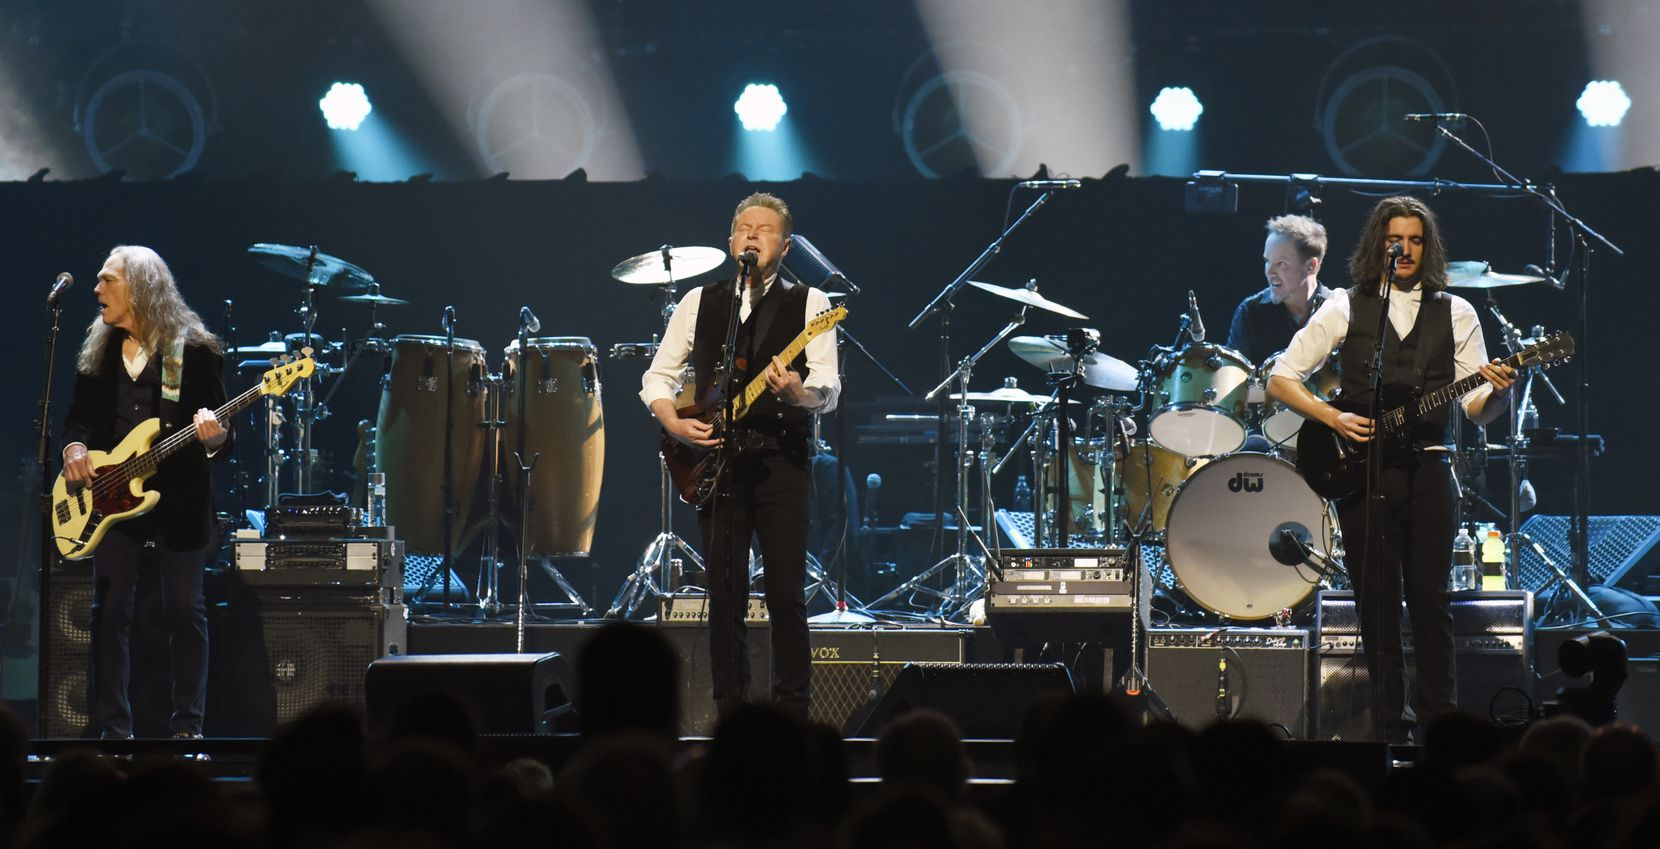 Don Henley, center, performs with other members of the American rock band the Eagles at the American Airlines Center in Dallas, Saturday night Feb. 29, 2020.